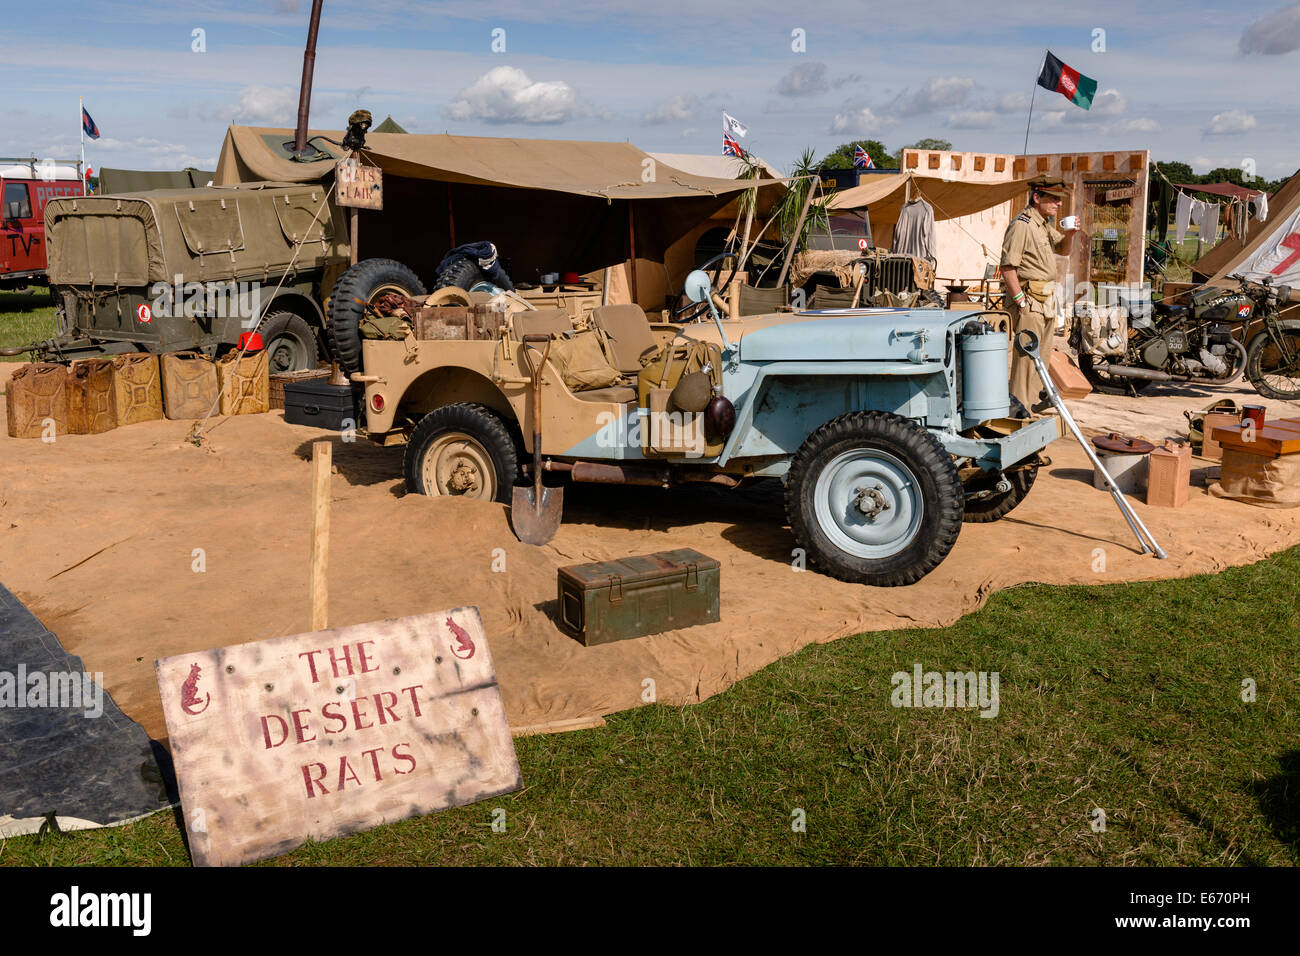 Kent, UK. 16th Aug, 2014. The 6th Annual Combined Ops Show at Headcorn Airfield. Featuring fly-overs, war re-enactments, - Stock Image